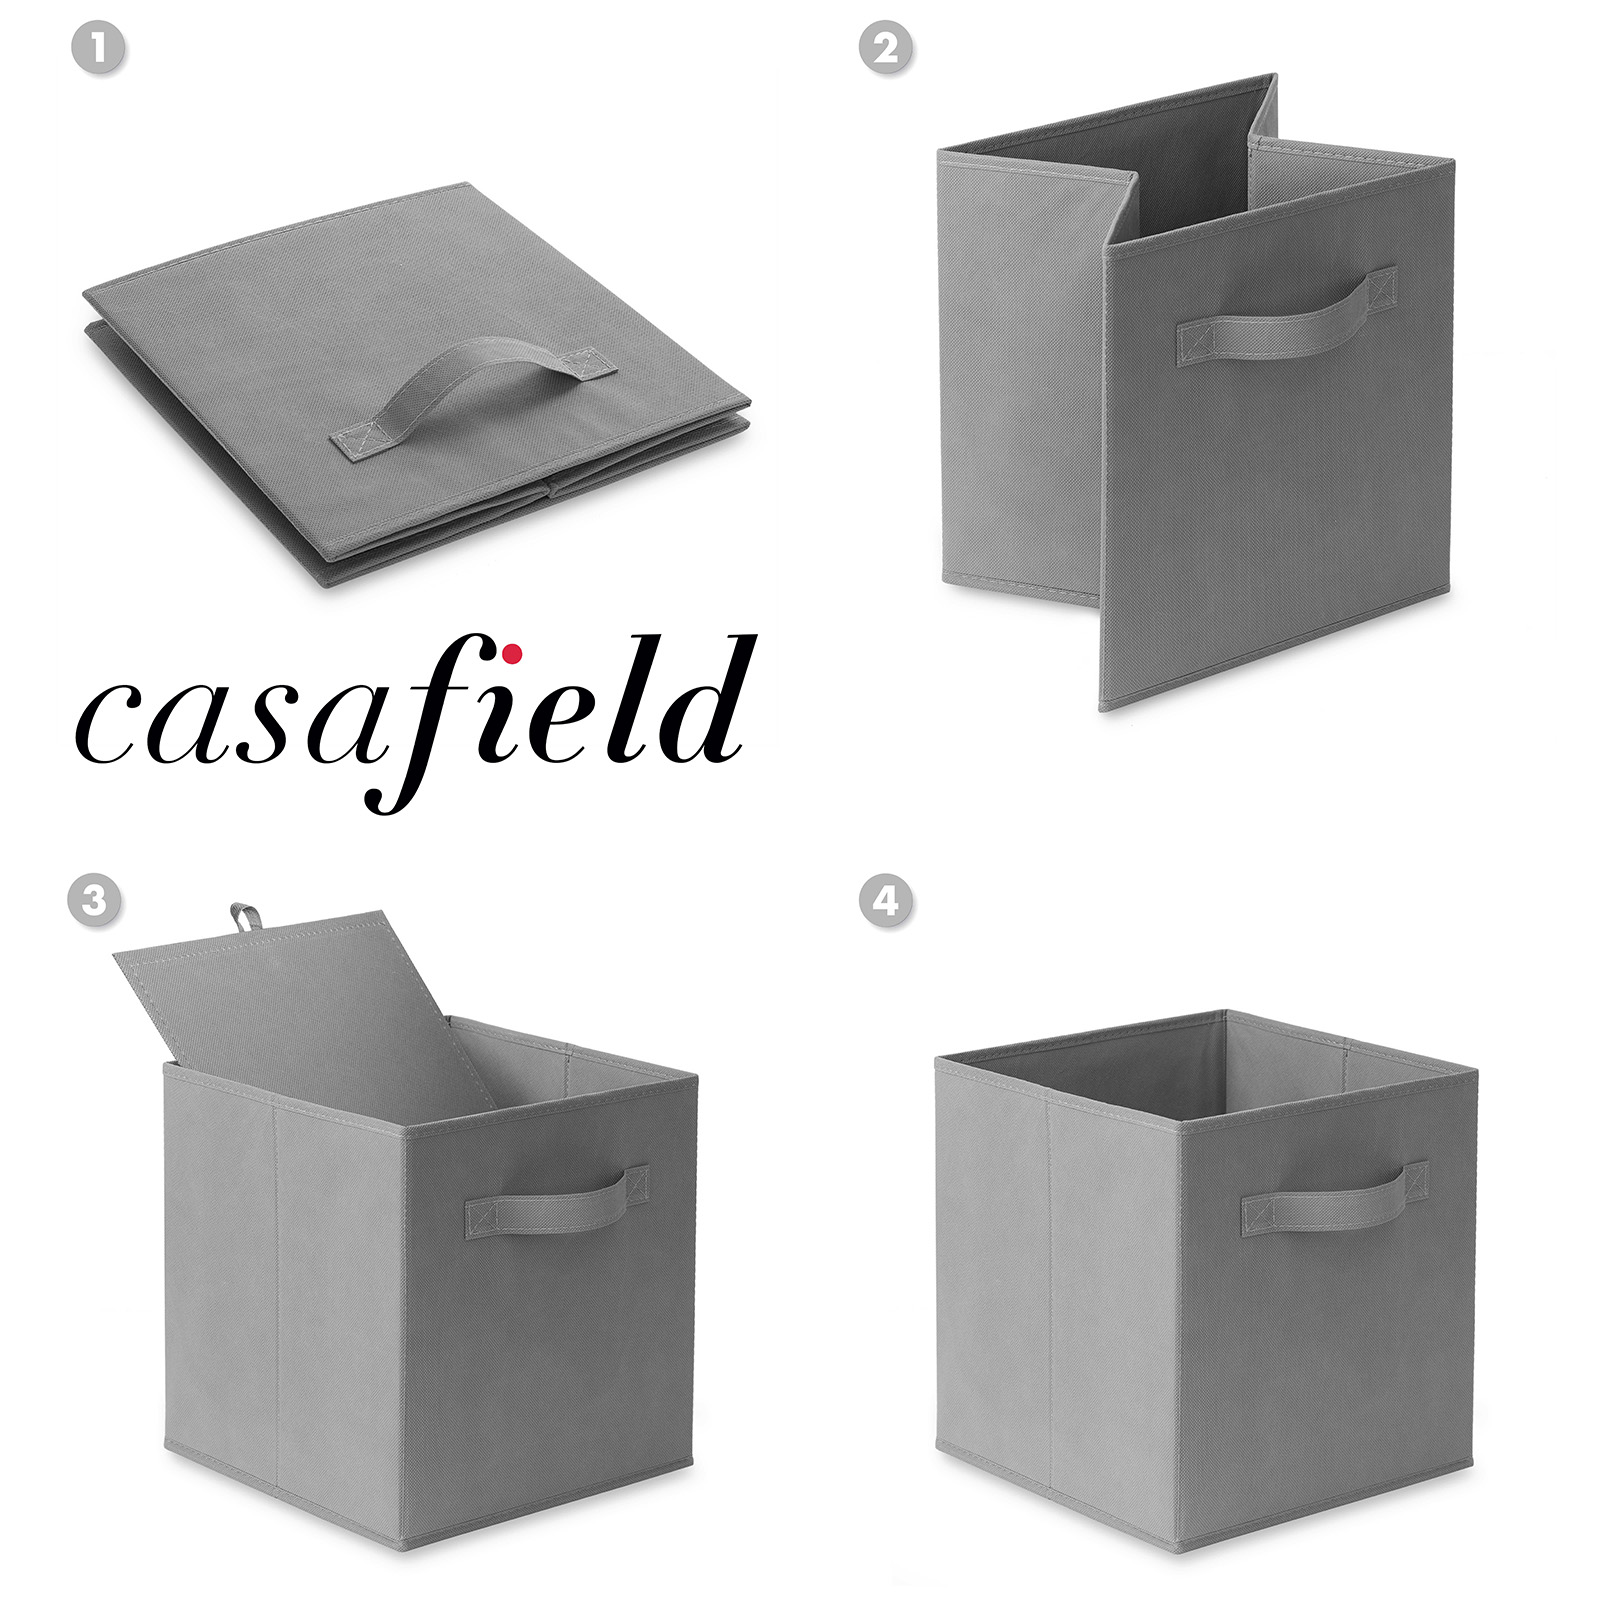 6-Collapsible-Foldable-Cloth-Fabric-Cubby-Cube-Storage-Bins-Baskets-for-Shelves thumbnail 23